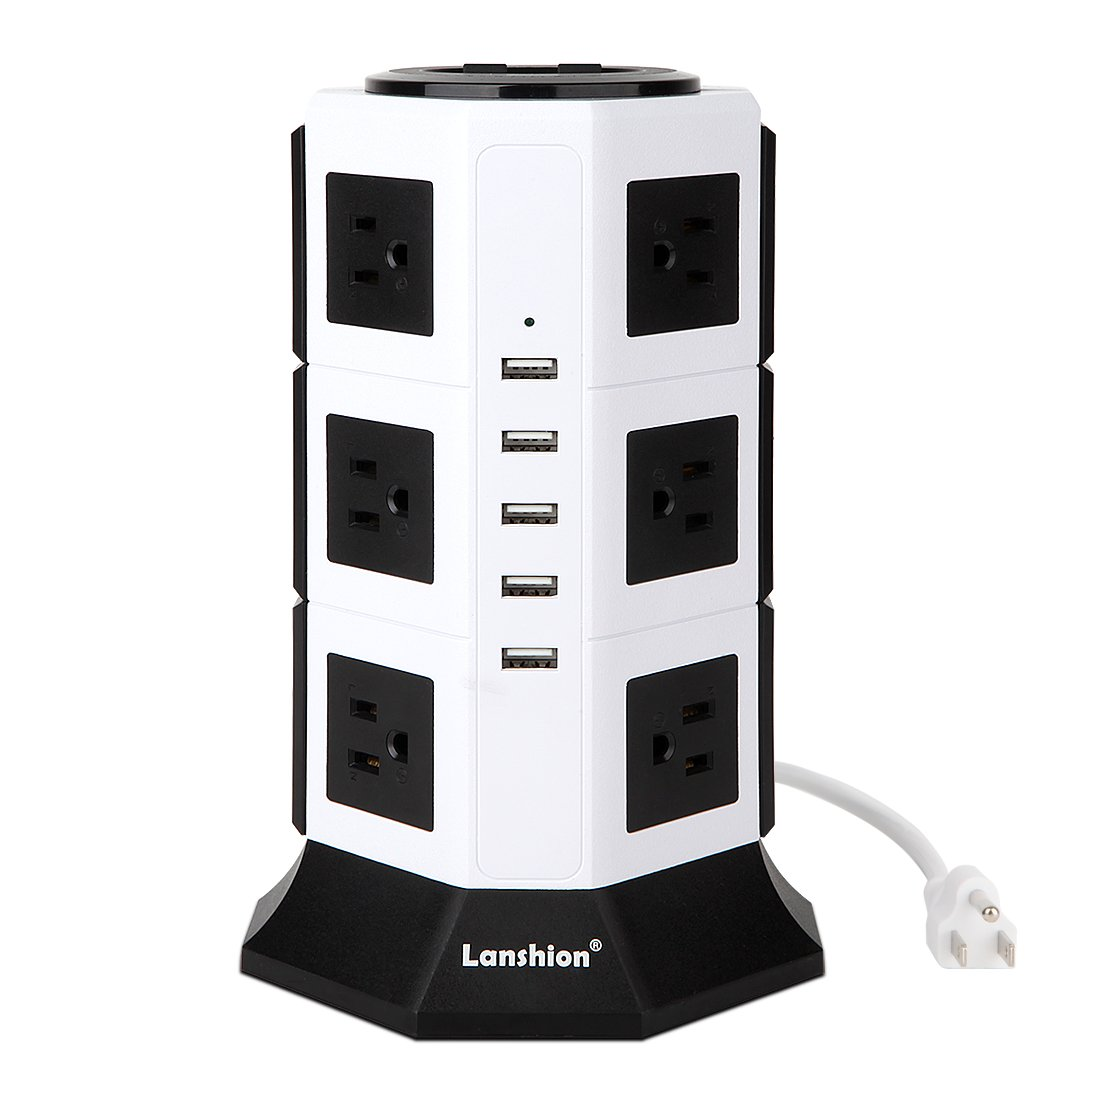 Power Strip Lanshion 12 Outlet Surge Protector with 5 USB Charging Ports 1875W Desktop USB Charging Station with 6.5-Feet Long Power Cord, 1000 Joules, UL Listed